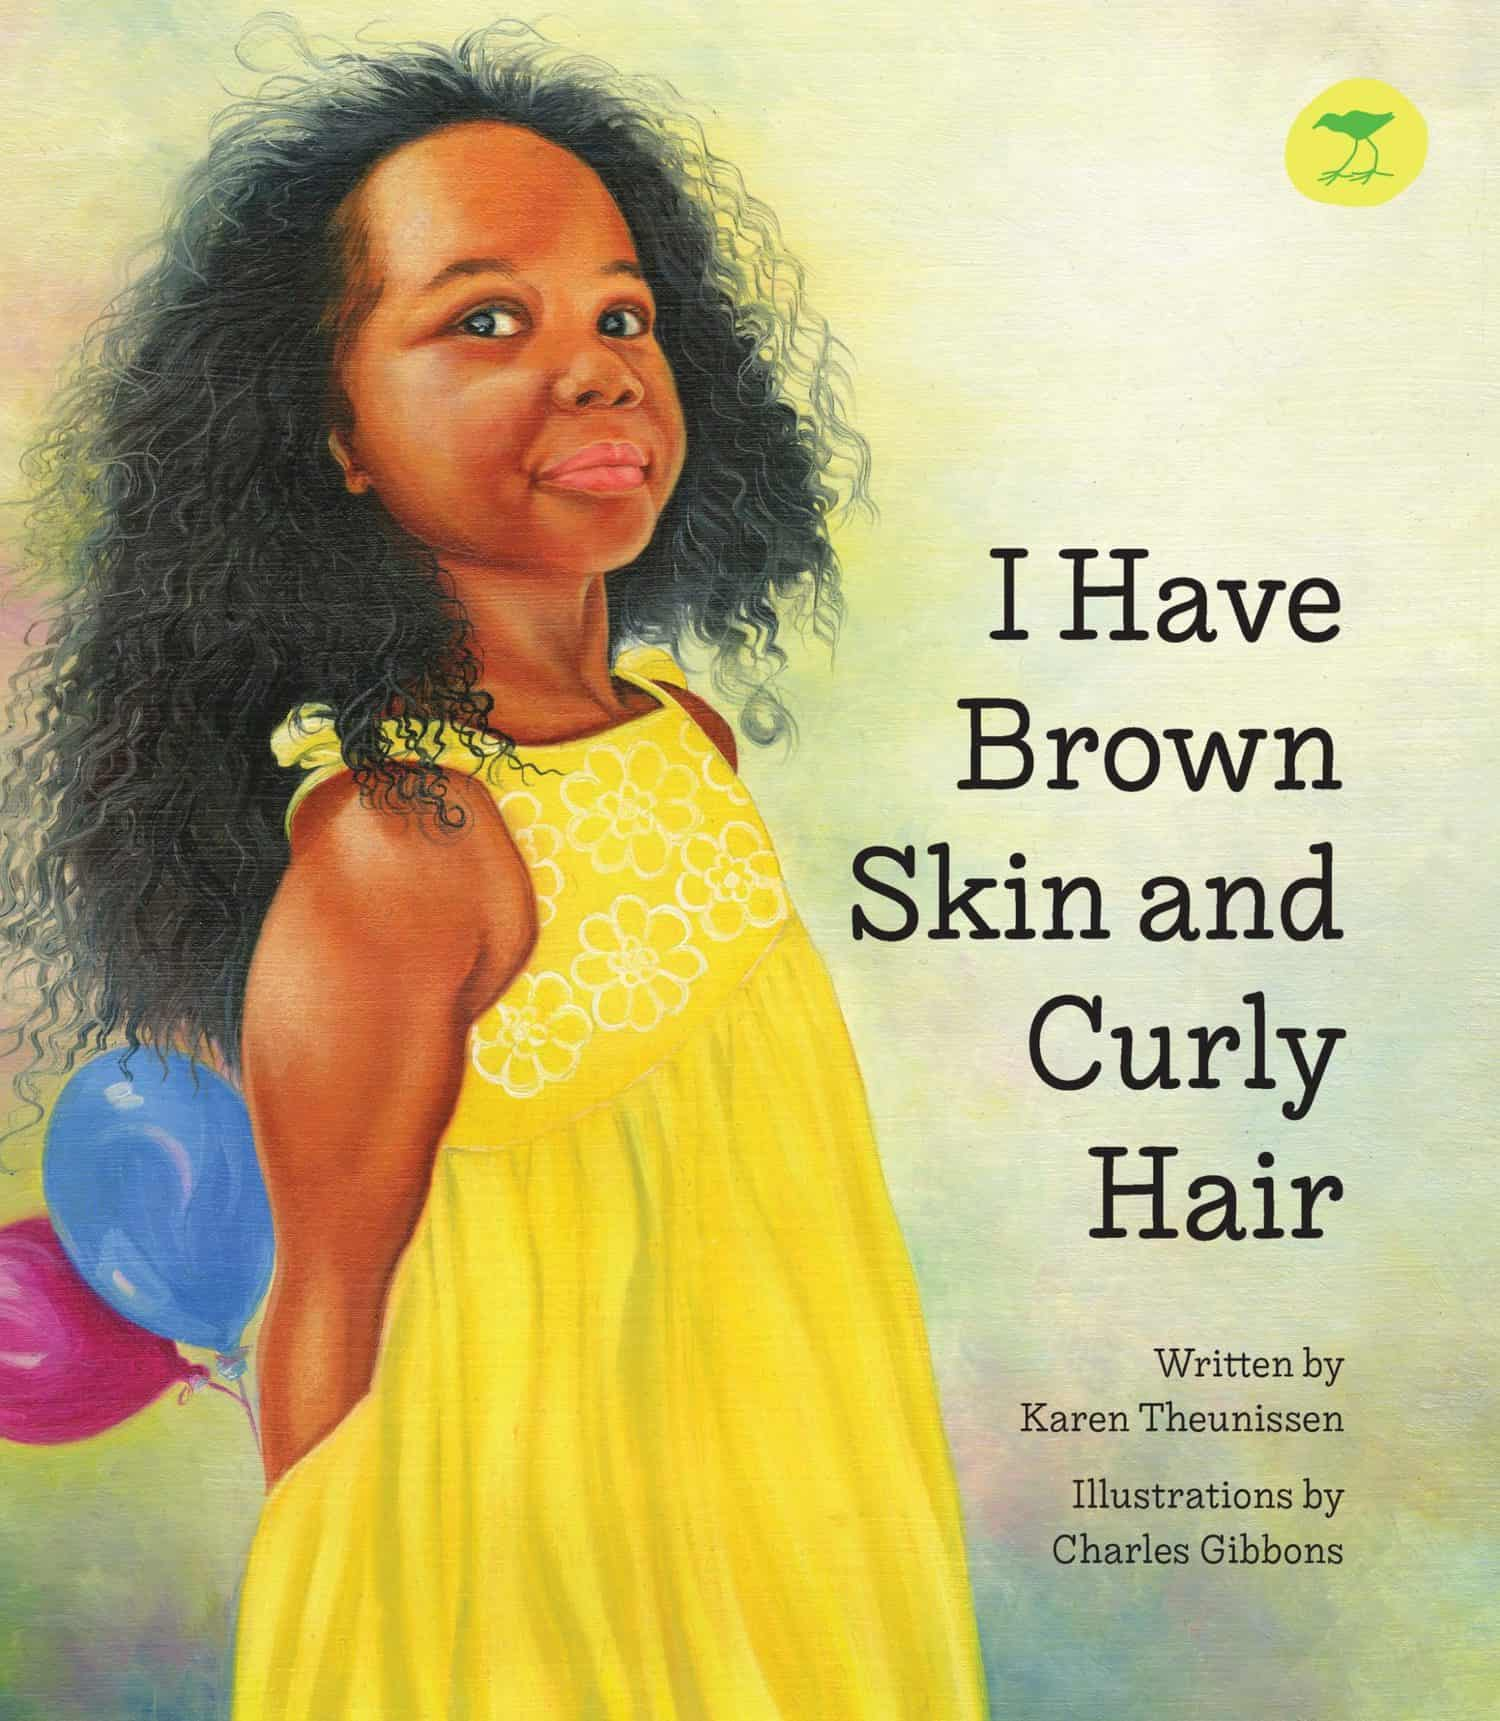 I Have Brown Skin and Curly Hair